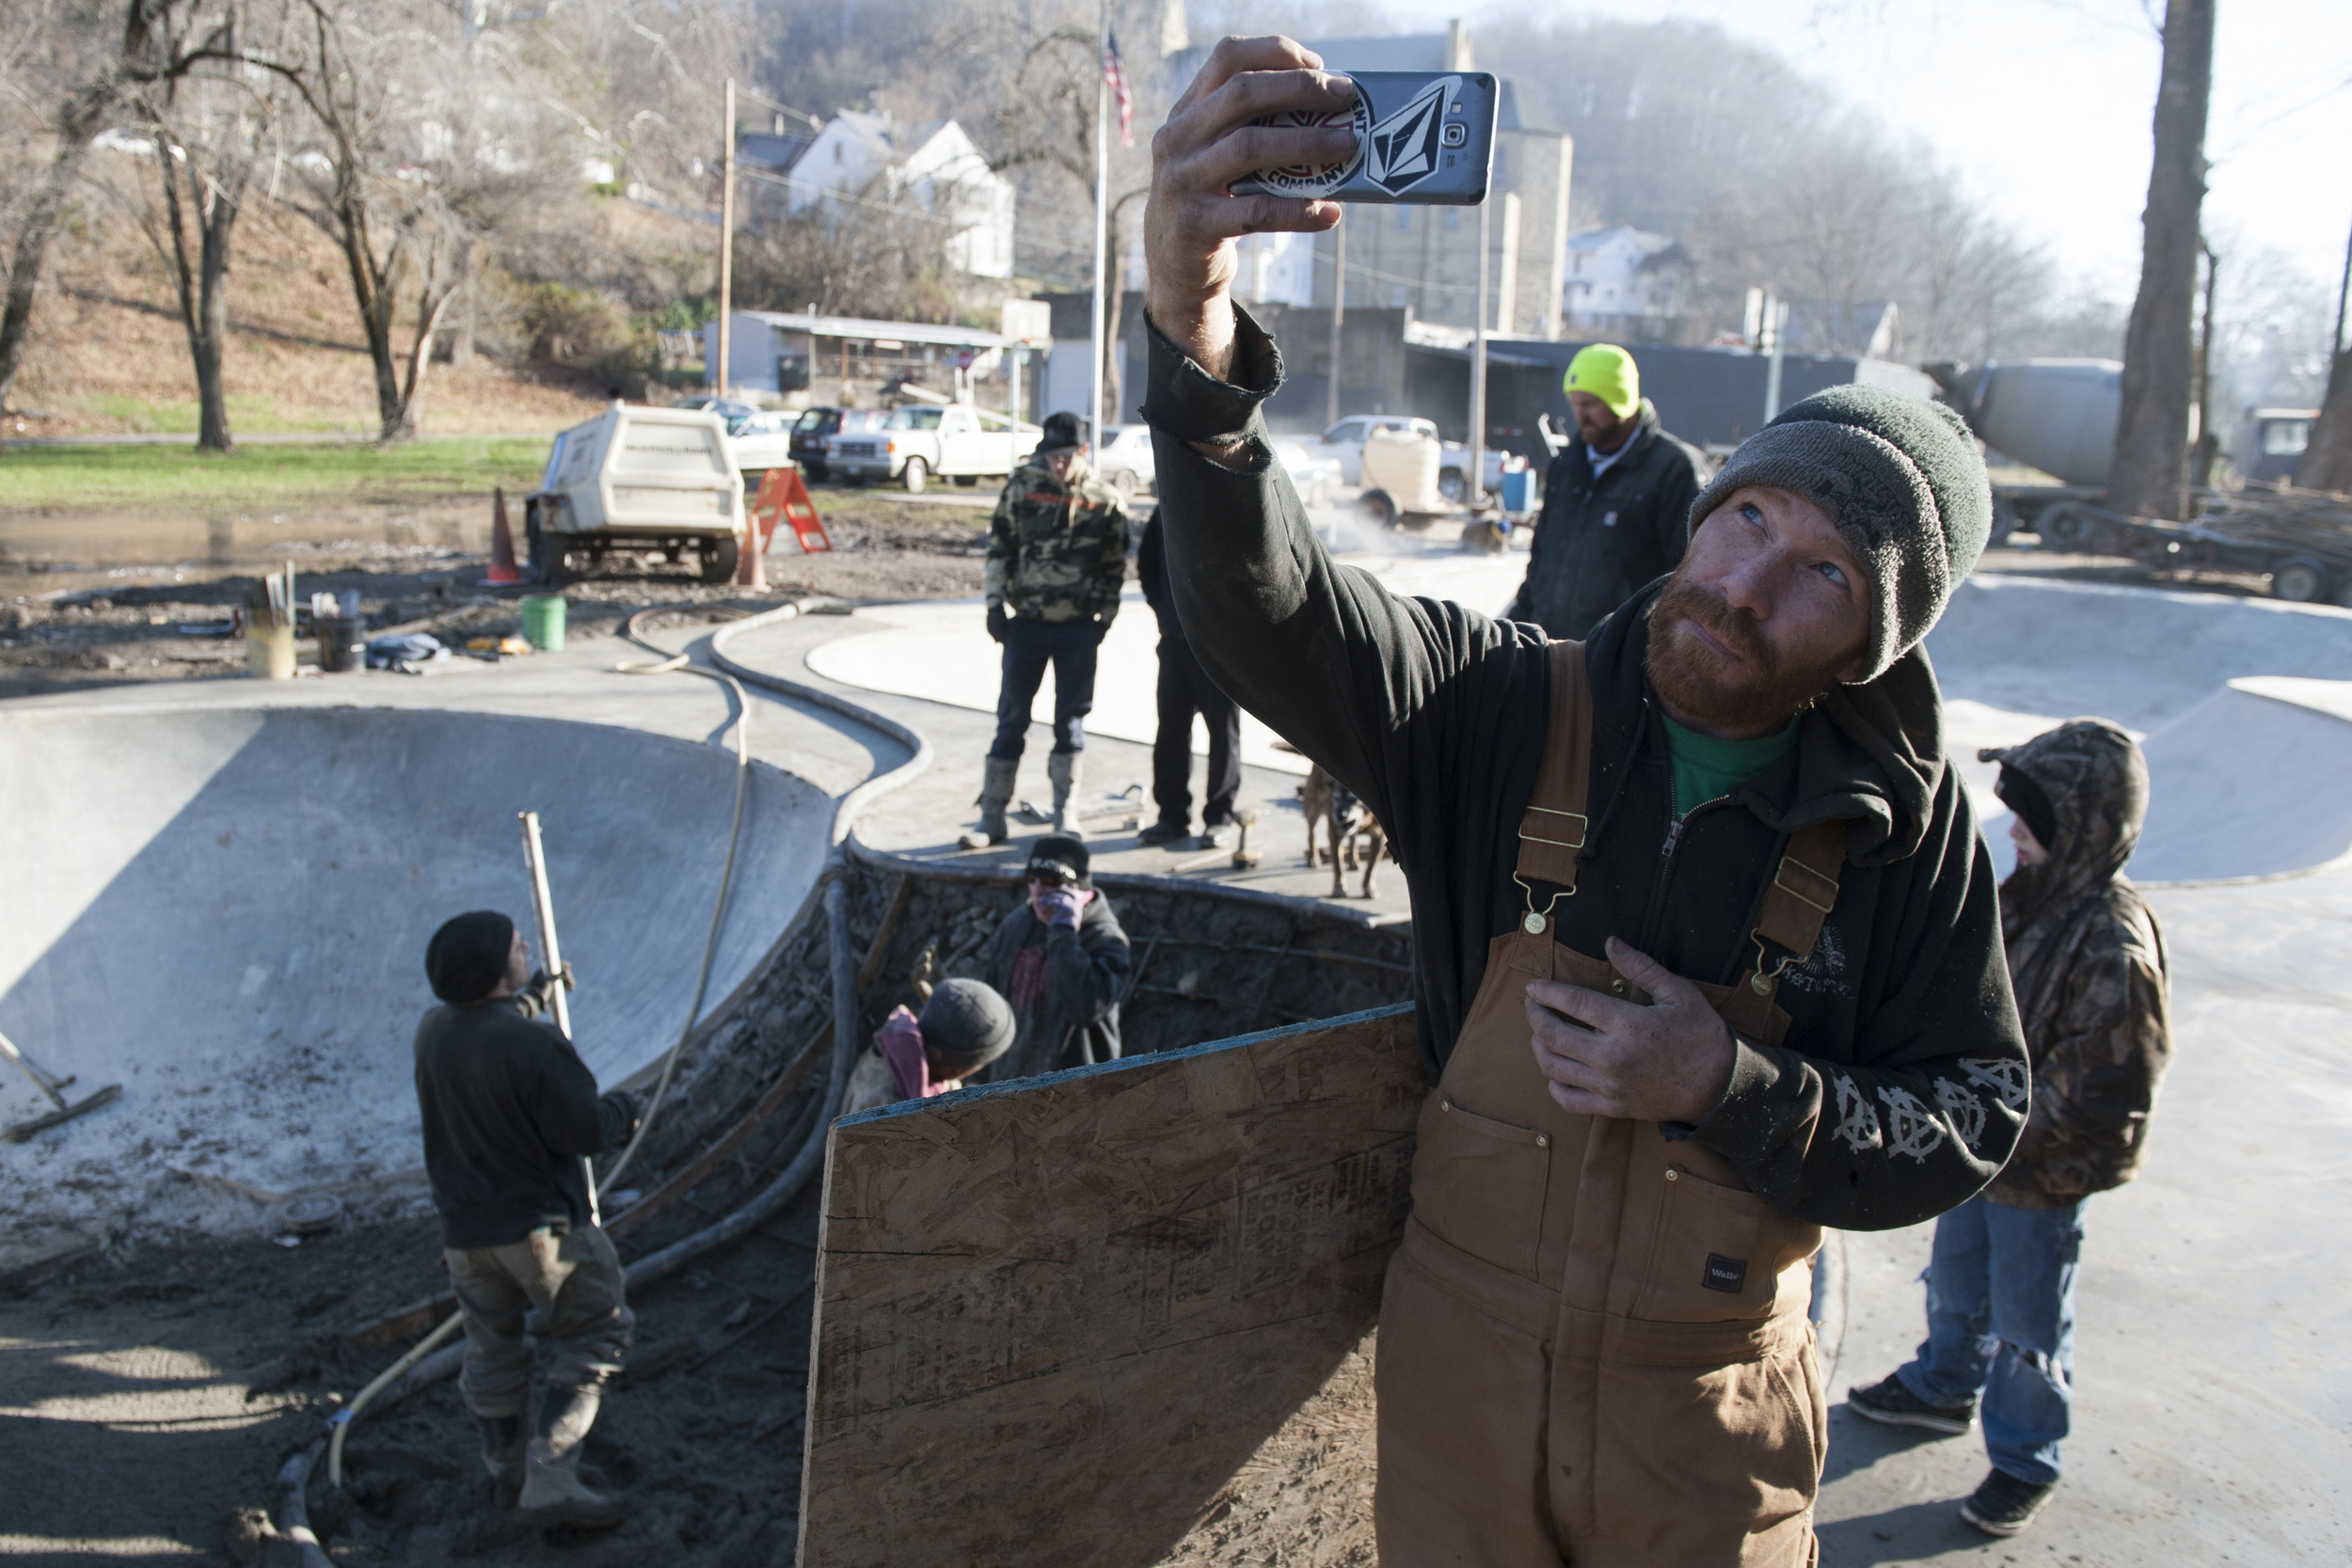 James from Skatopia takes a picture of the park and the workers while he takes a small break.